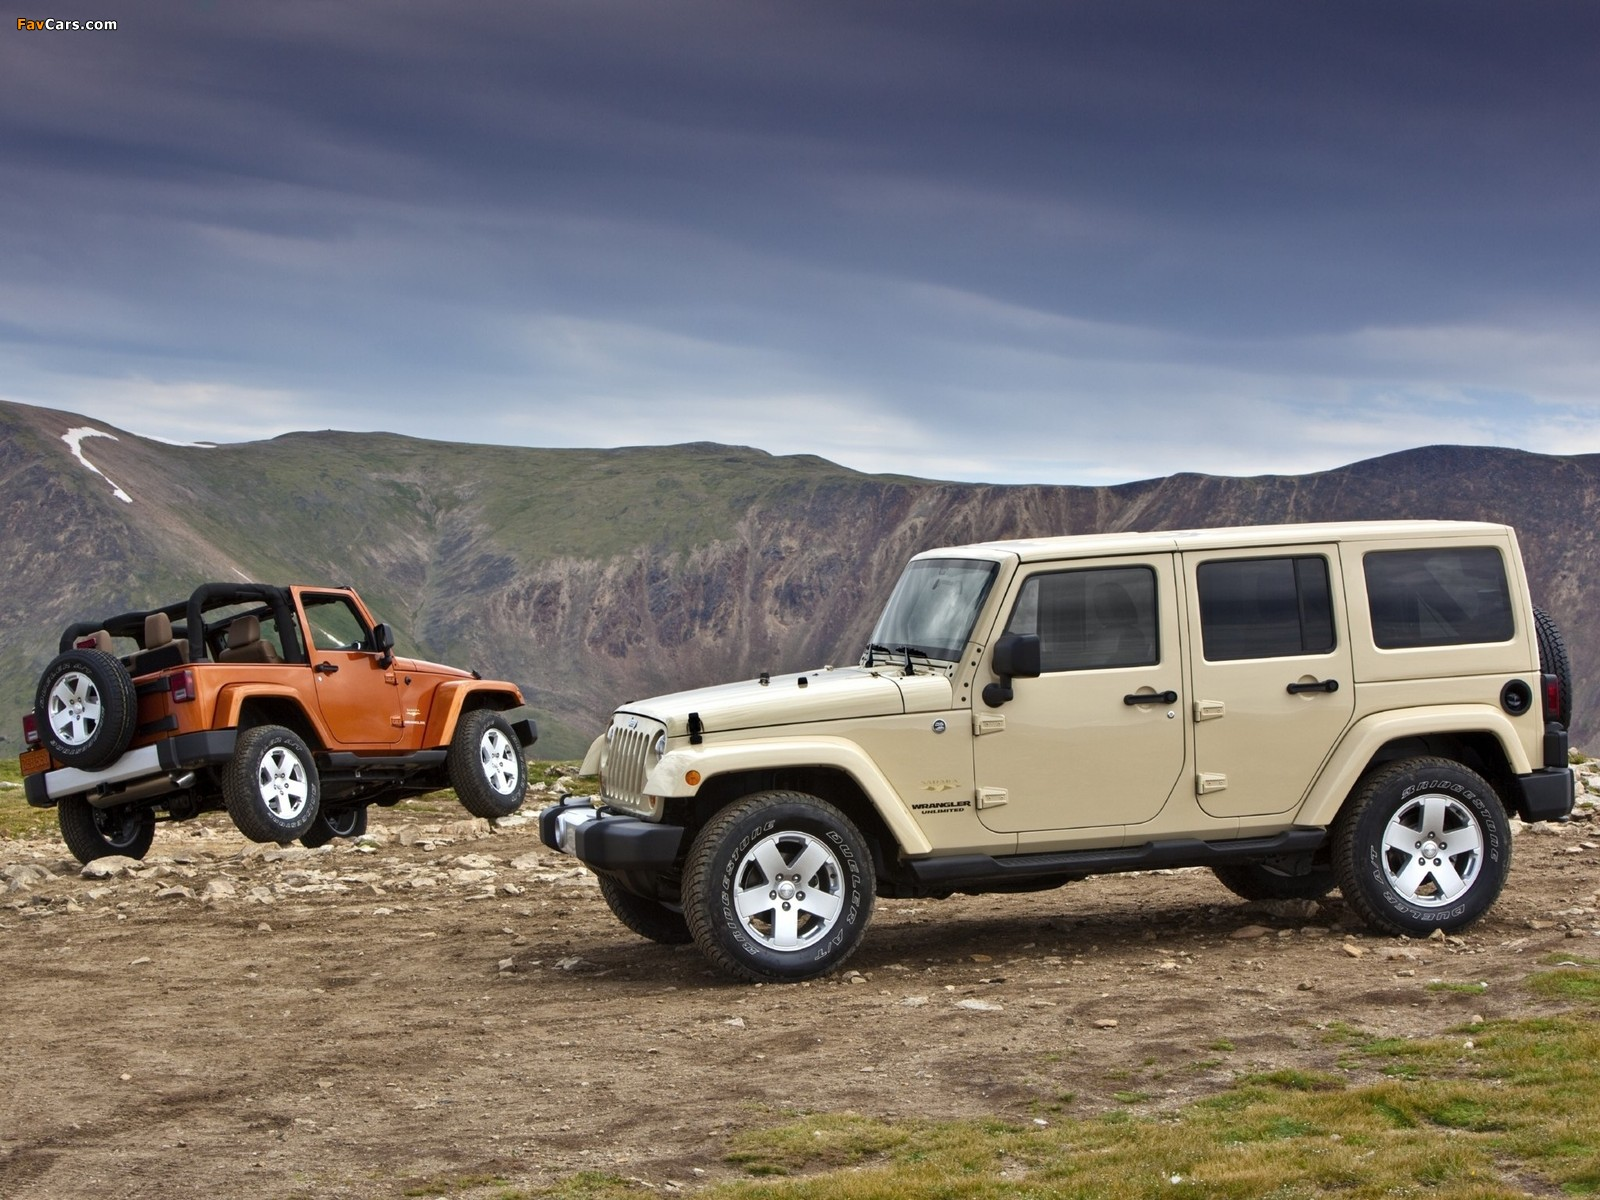 Images of Jeep Wrangler (1600 x 1200)